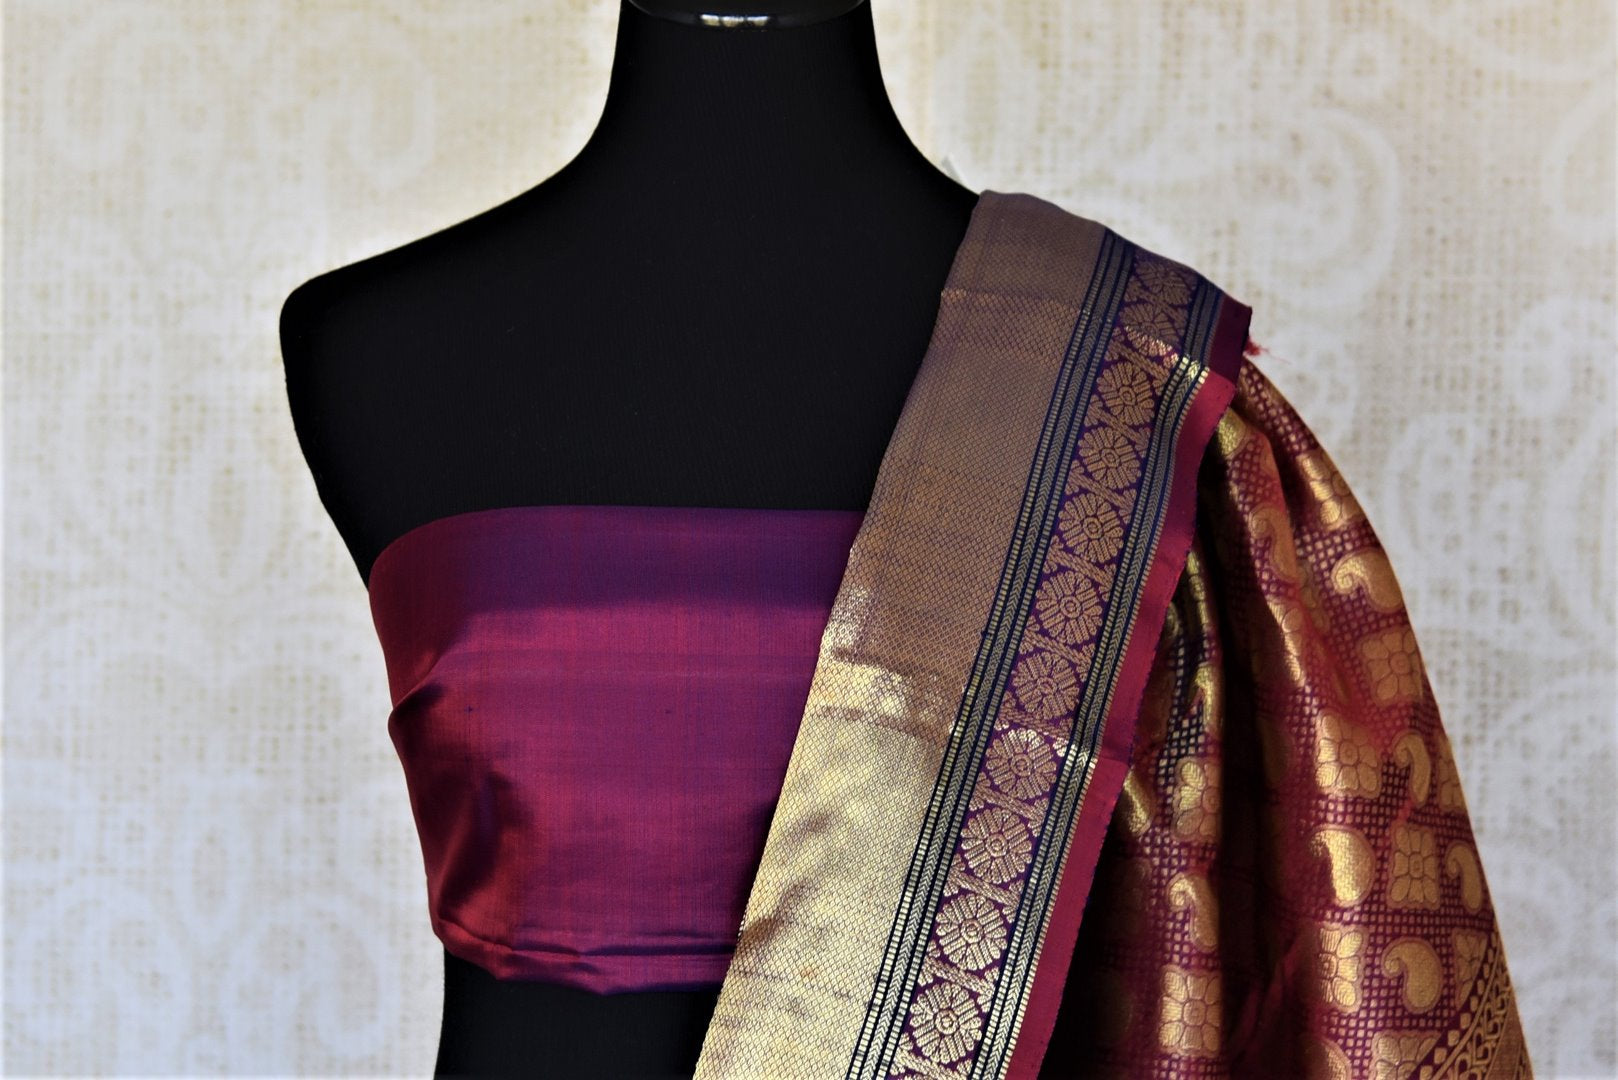 Shop beautiful dark blue Kanjivaram saree online in USA with golden zari border. For Indian women in USA, Pure Elegance Indian fashion store brings an exquisite collection Kanjeevaram sarees, Kanchipuram silk saris, tussar sarees, zari work sarees, pure silk sarees all under one roof. Shop online now.-blouse pallu